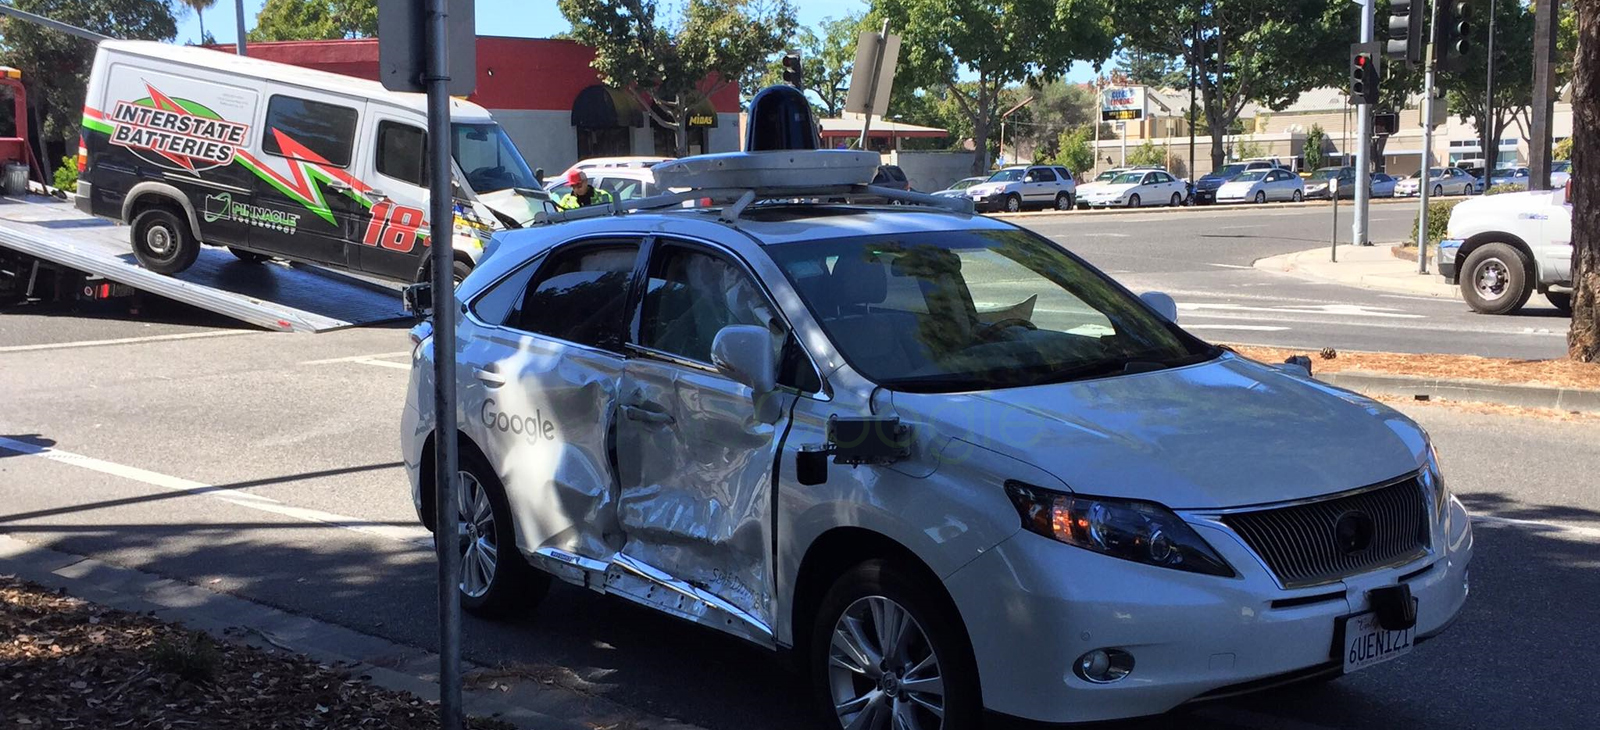 google self driving car intersection accident Un vehículo autónomo de Google es víctima de un nuevo accidente